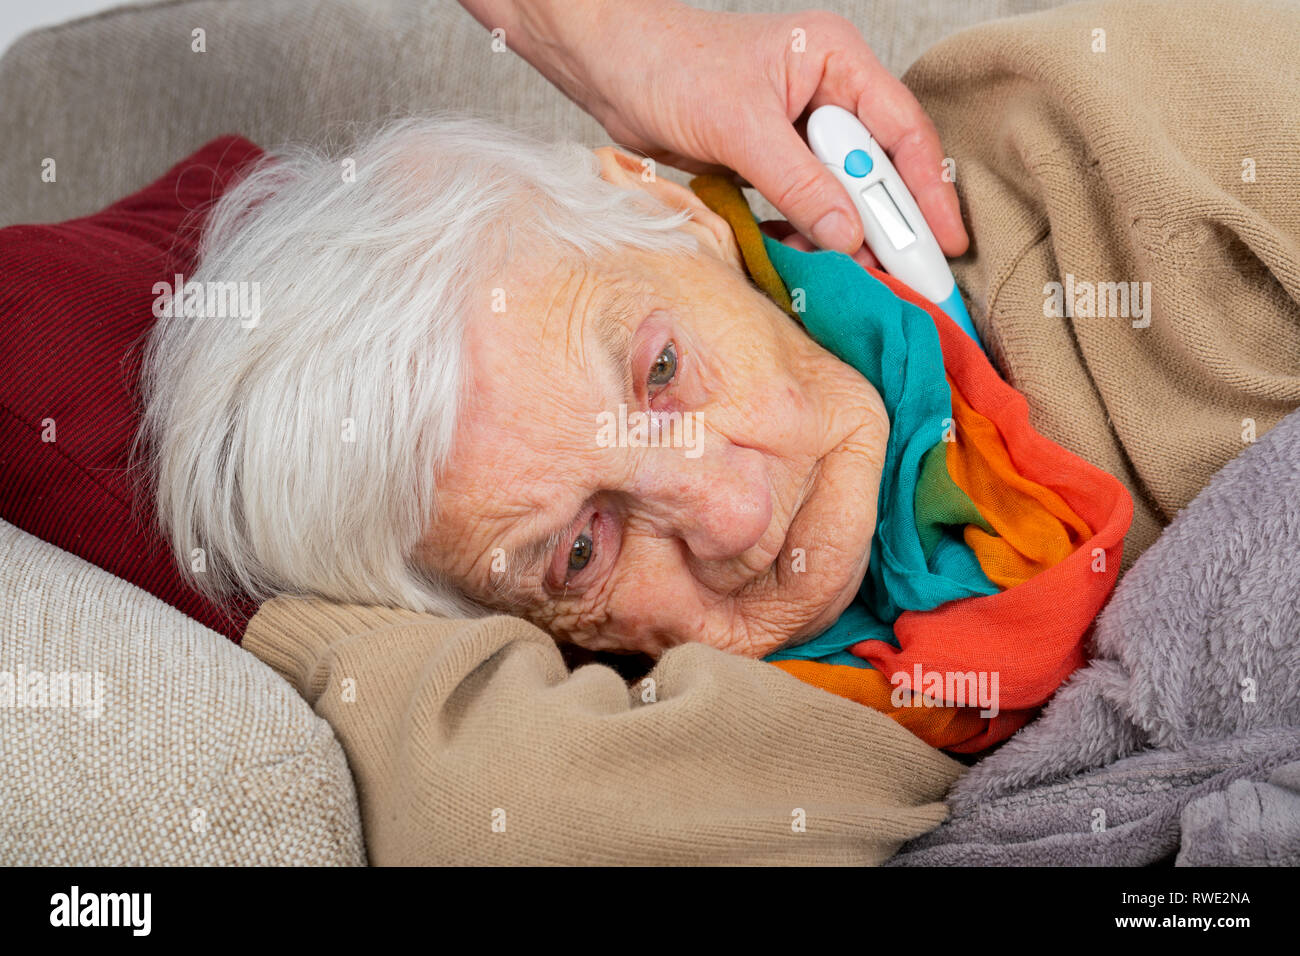 Close up picture senior woman being sick, carer holding digital thermometer next to her head - fever - Stock Image